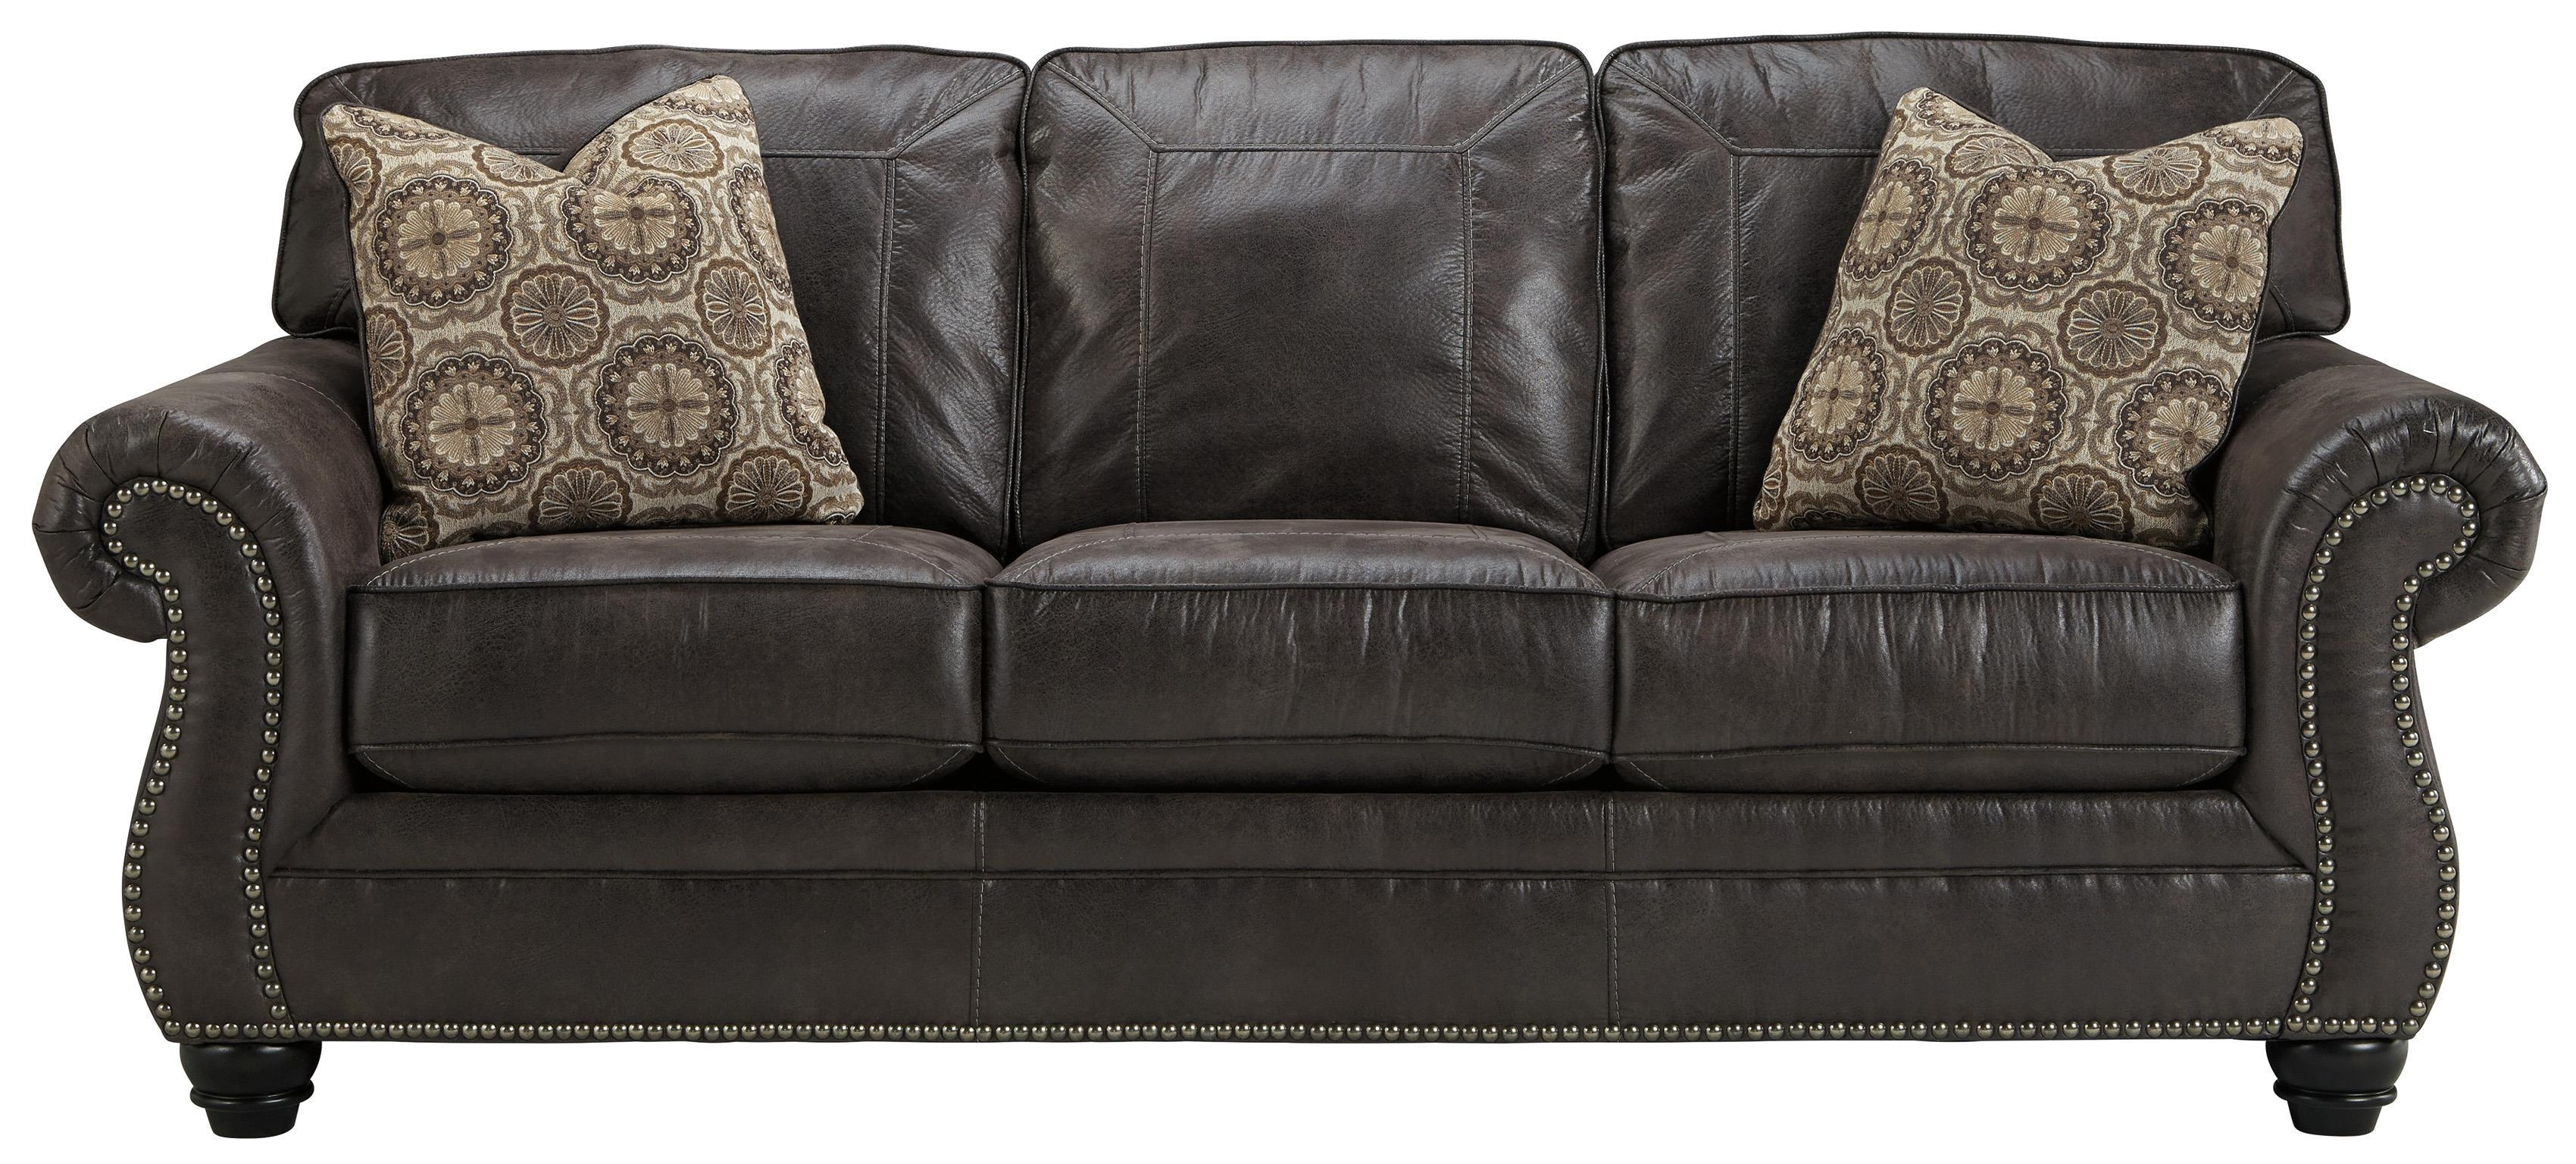 leather sleeper sofa with nailheads old set designs 20 inspirations faux sofas ideas